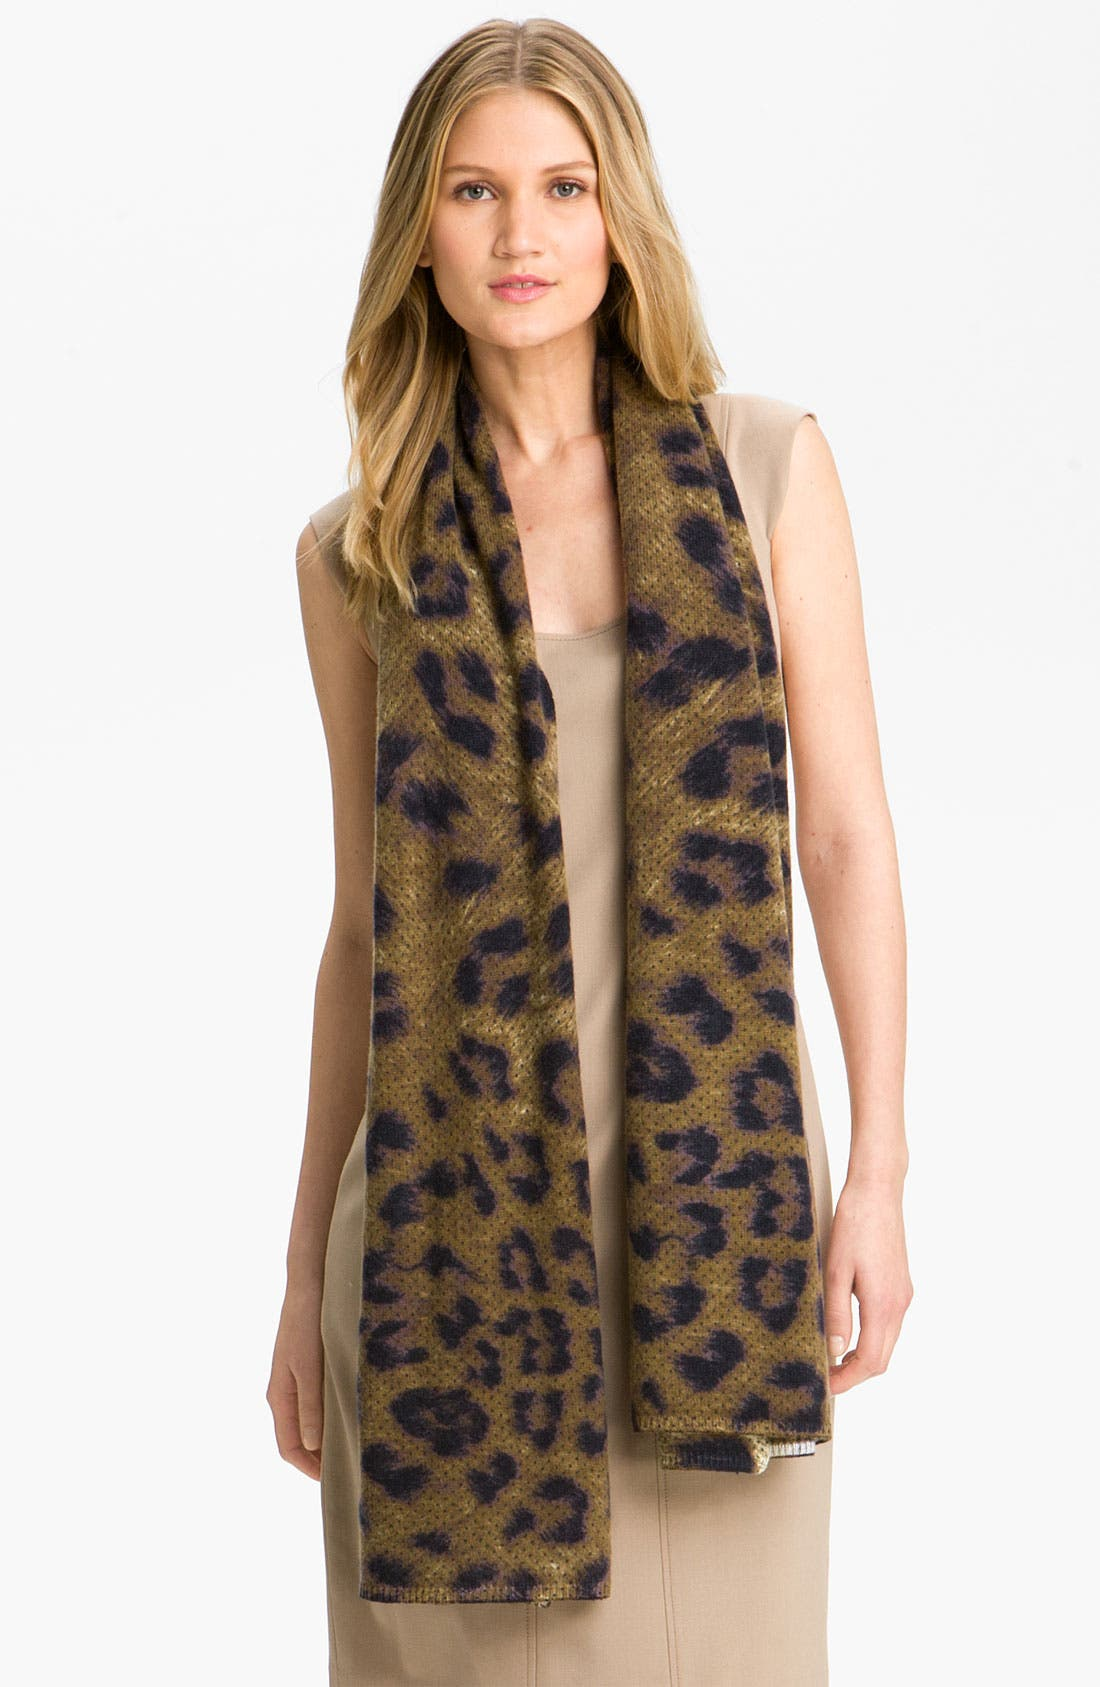 MAGASCHONI Dotted Leopard Print Cashmere Scarf, Main, color, 200